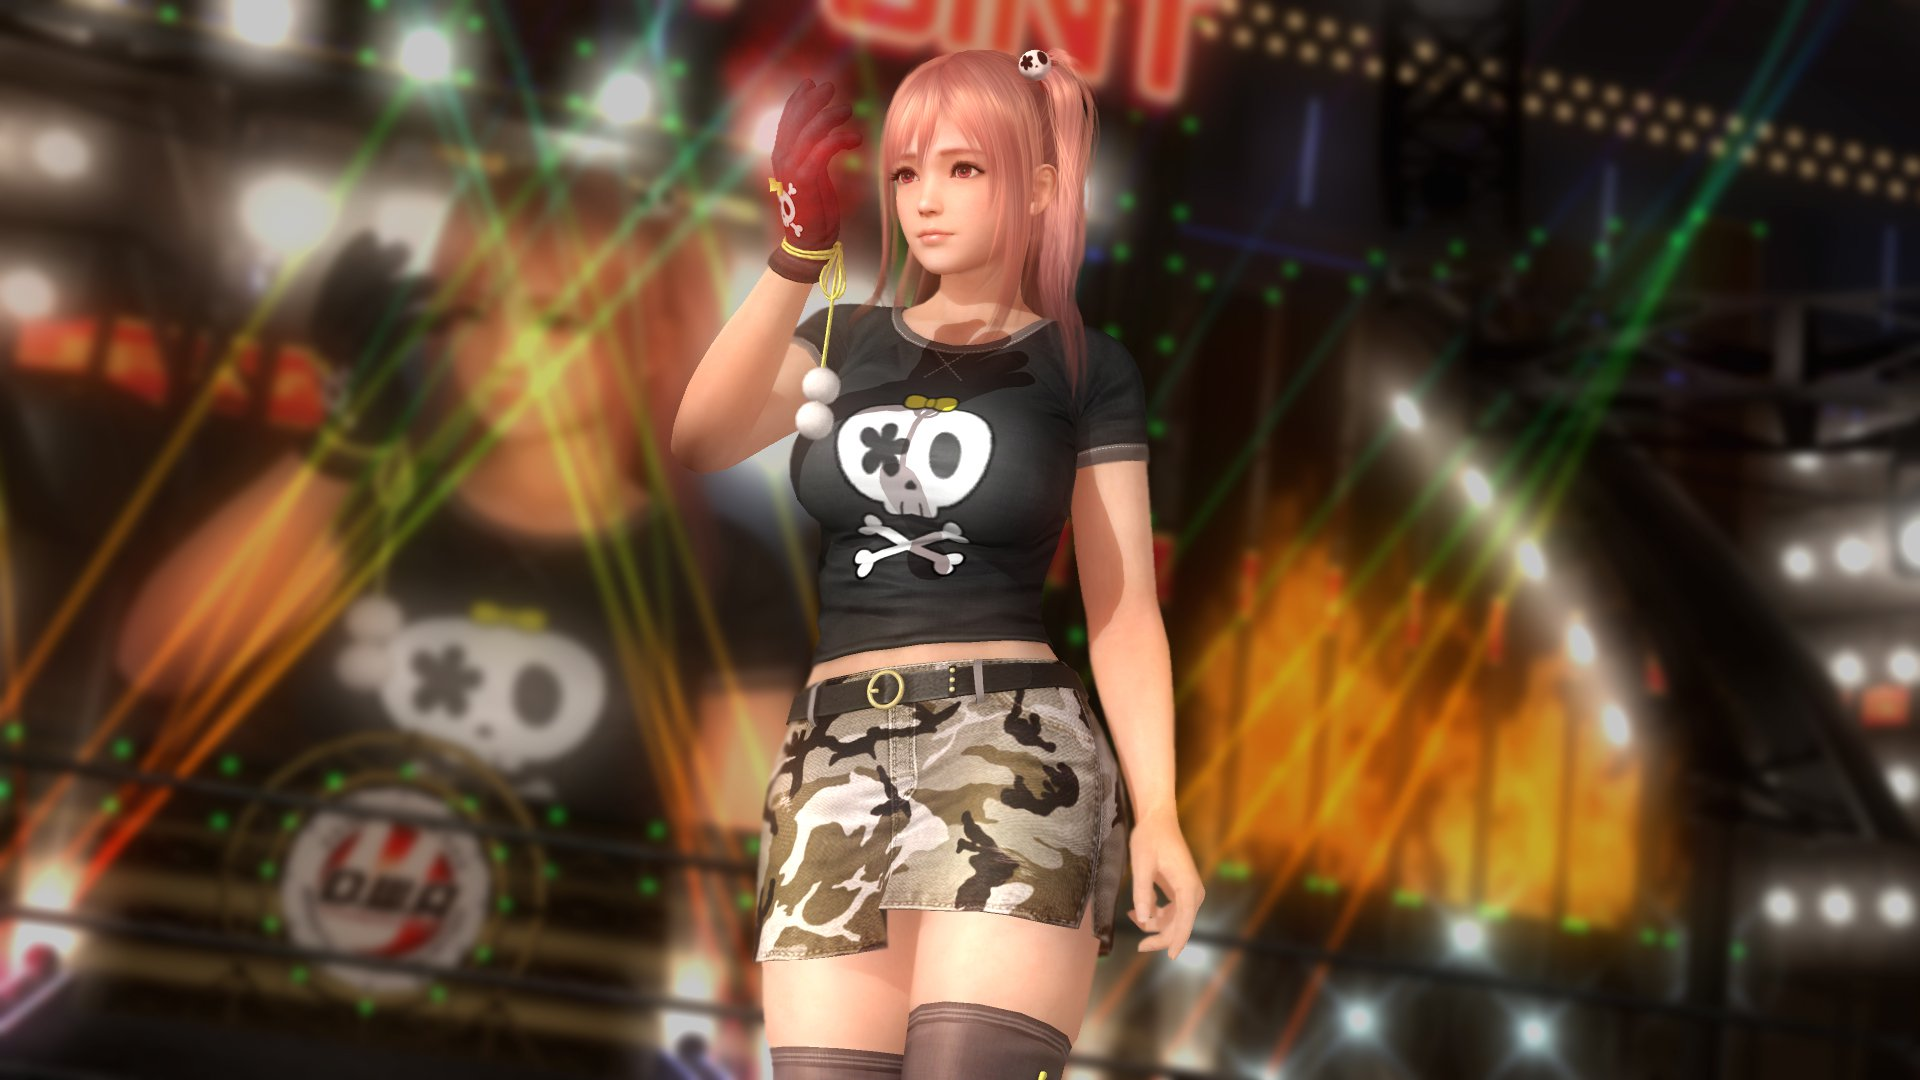 Dead Or Alive 5 Last Round Character Honoka 2015 Promotional